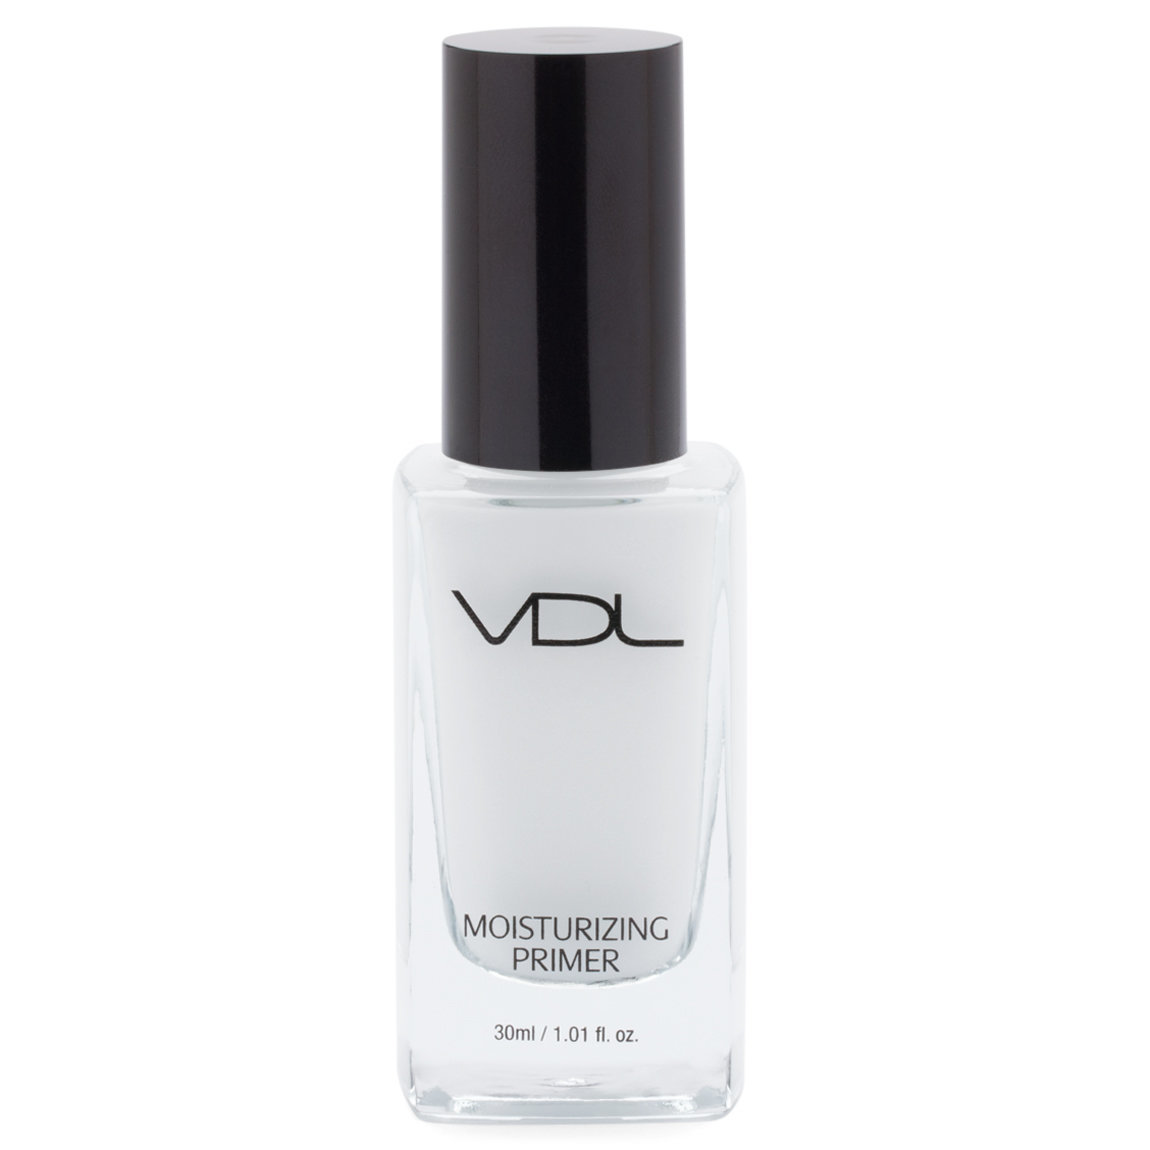 VDL Moisturizing Primer alternative view 1 - product swatch.